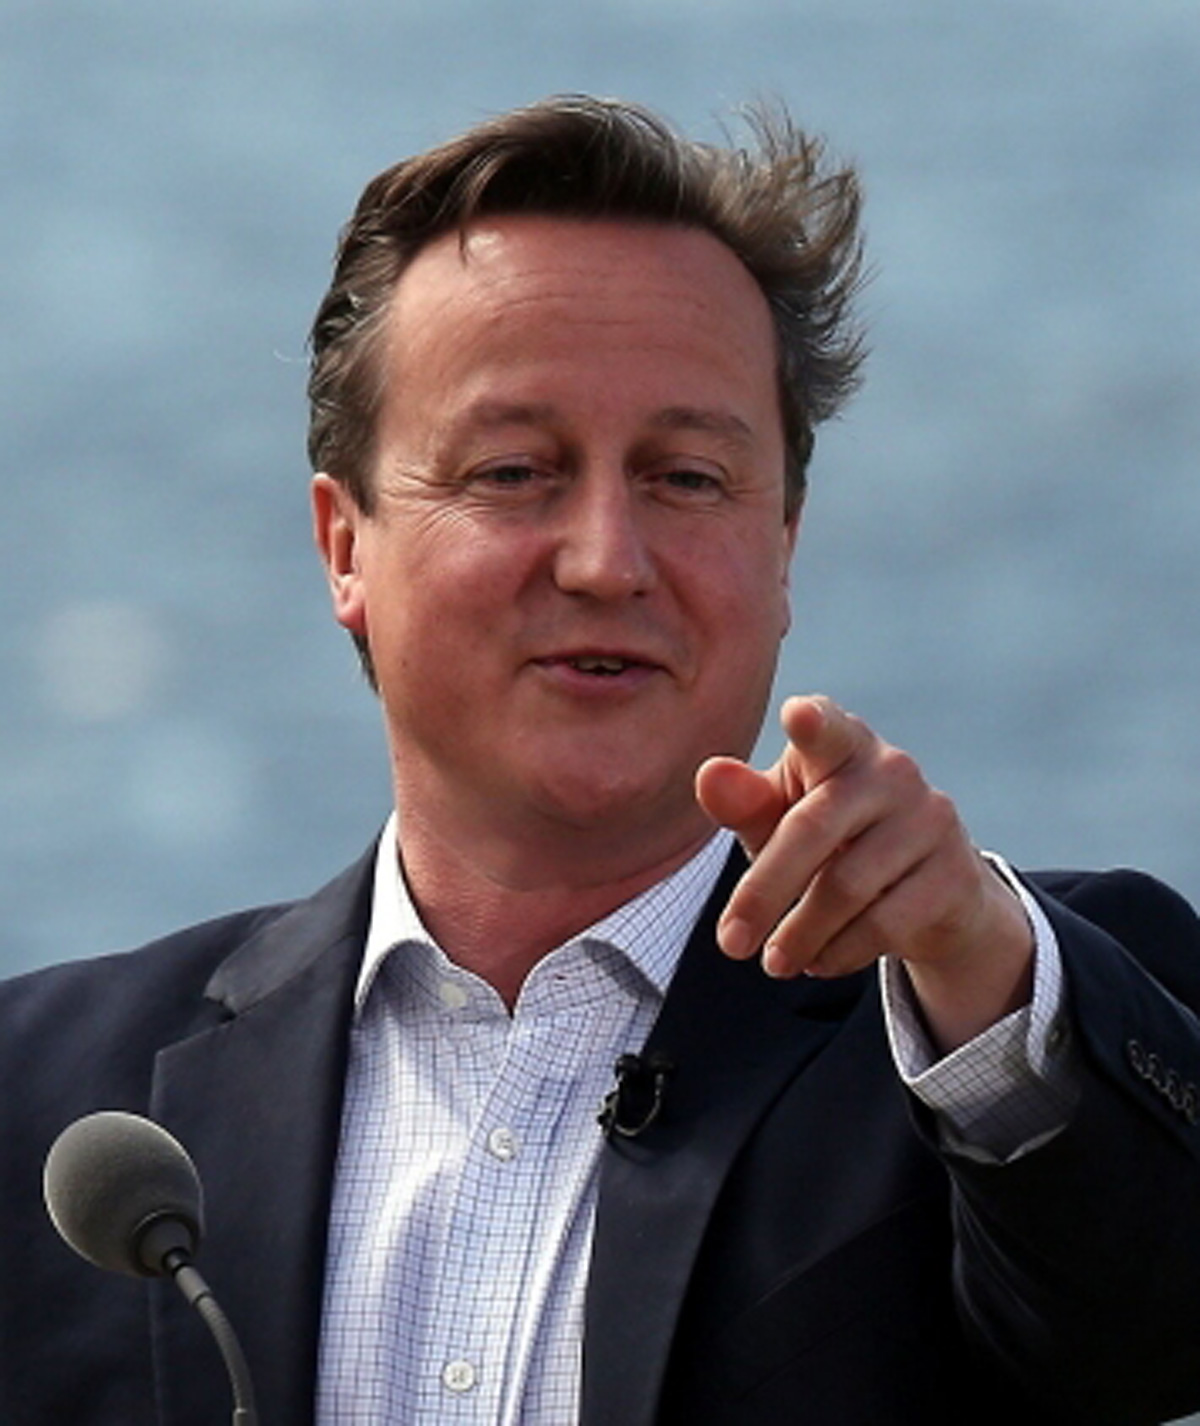 ABSTENTION ORDER: David Cameron